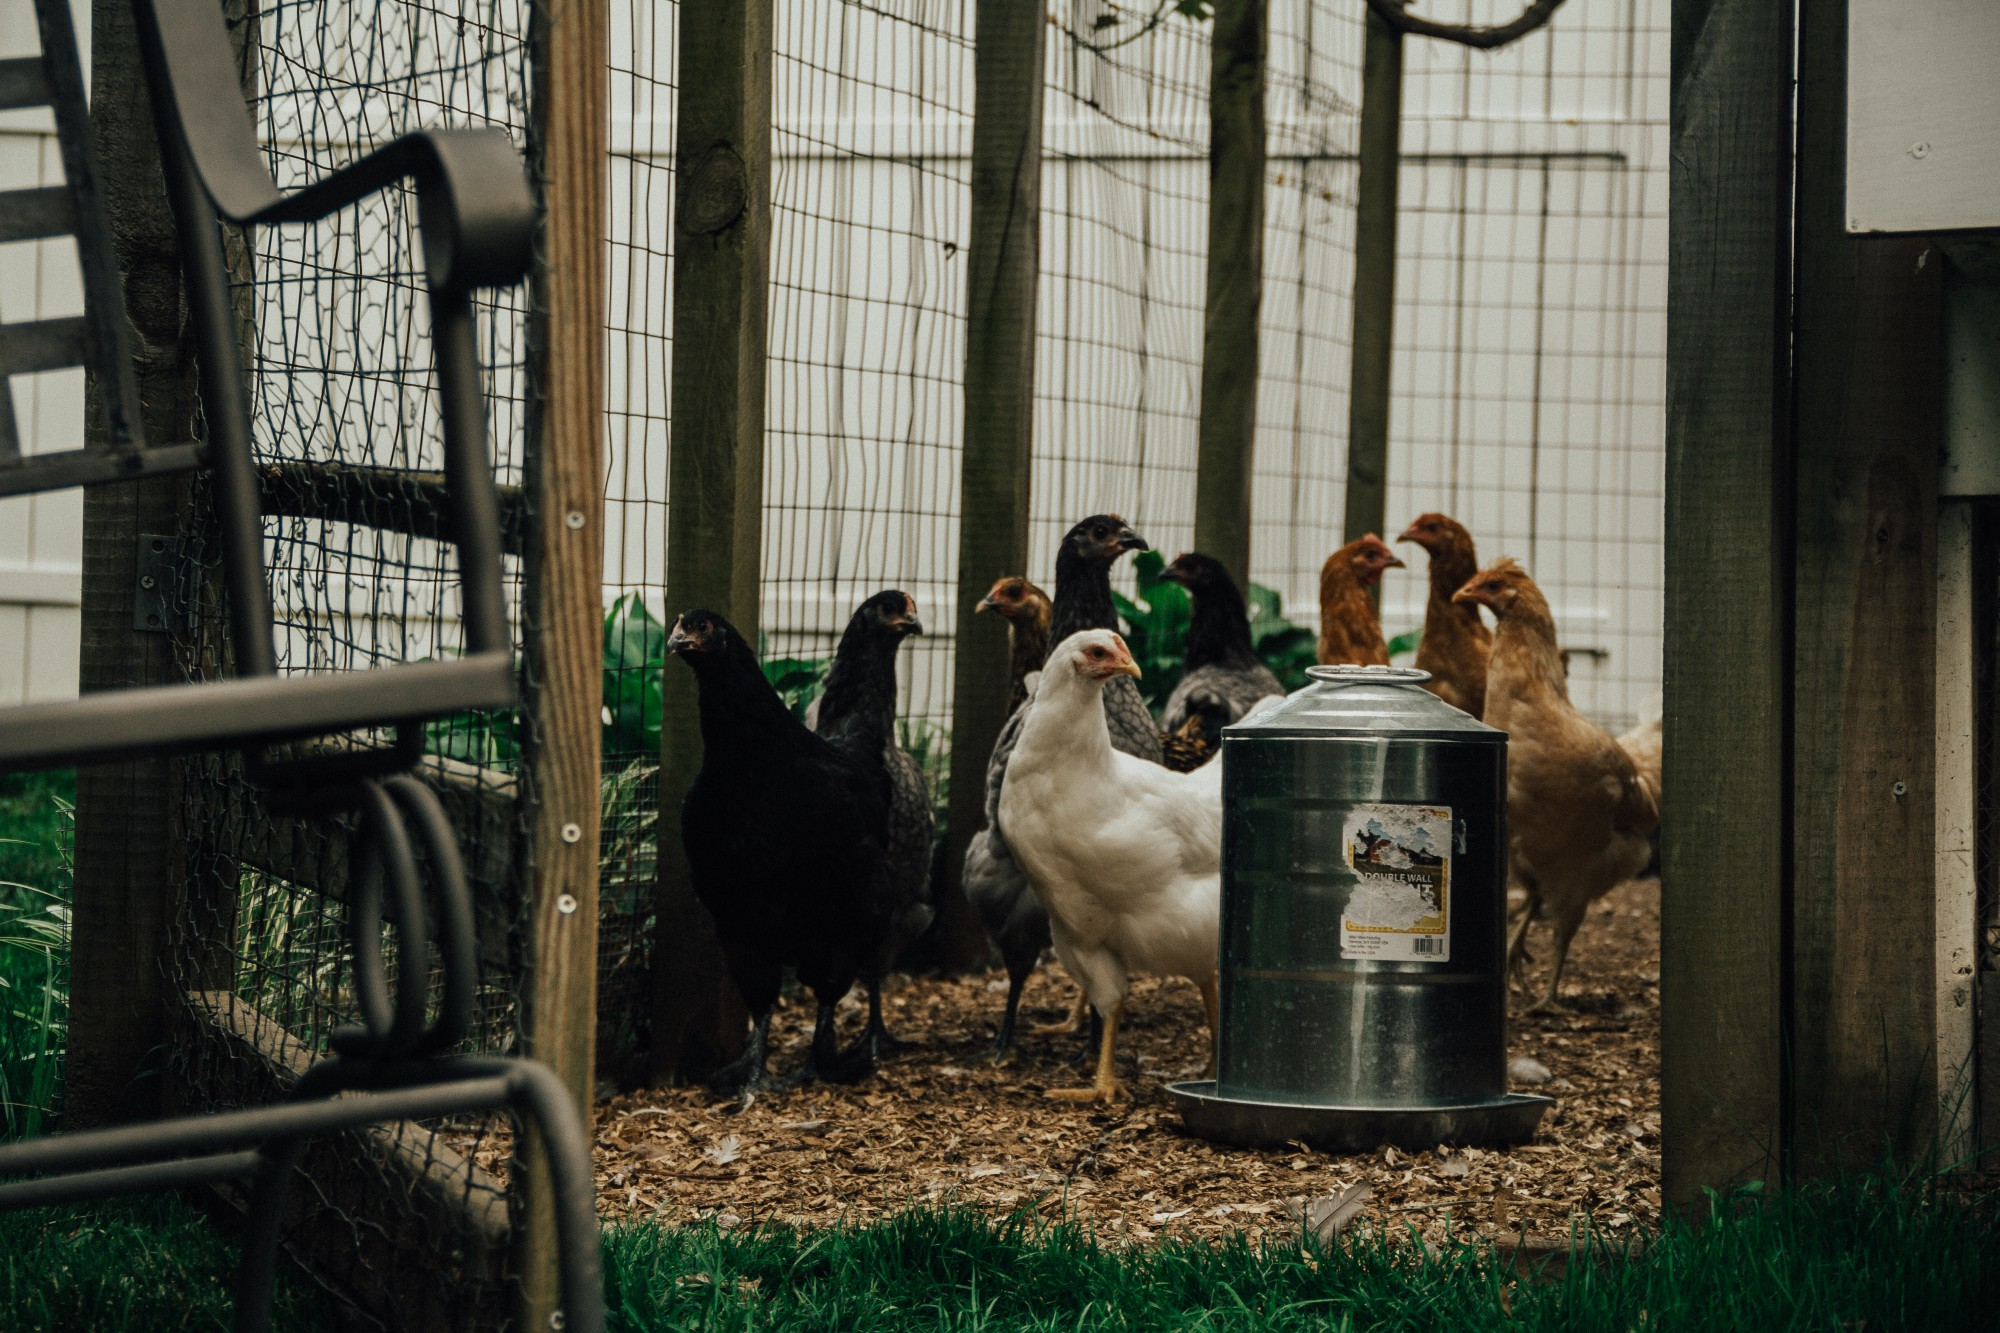 Our flock of chickens pictured inside their enclosure